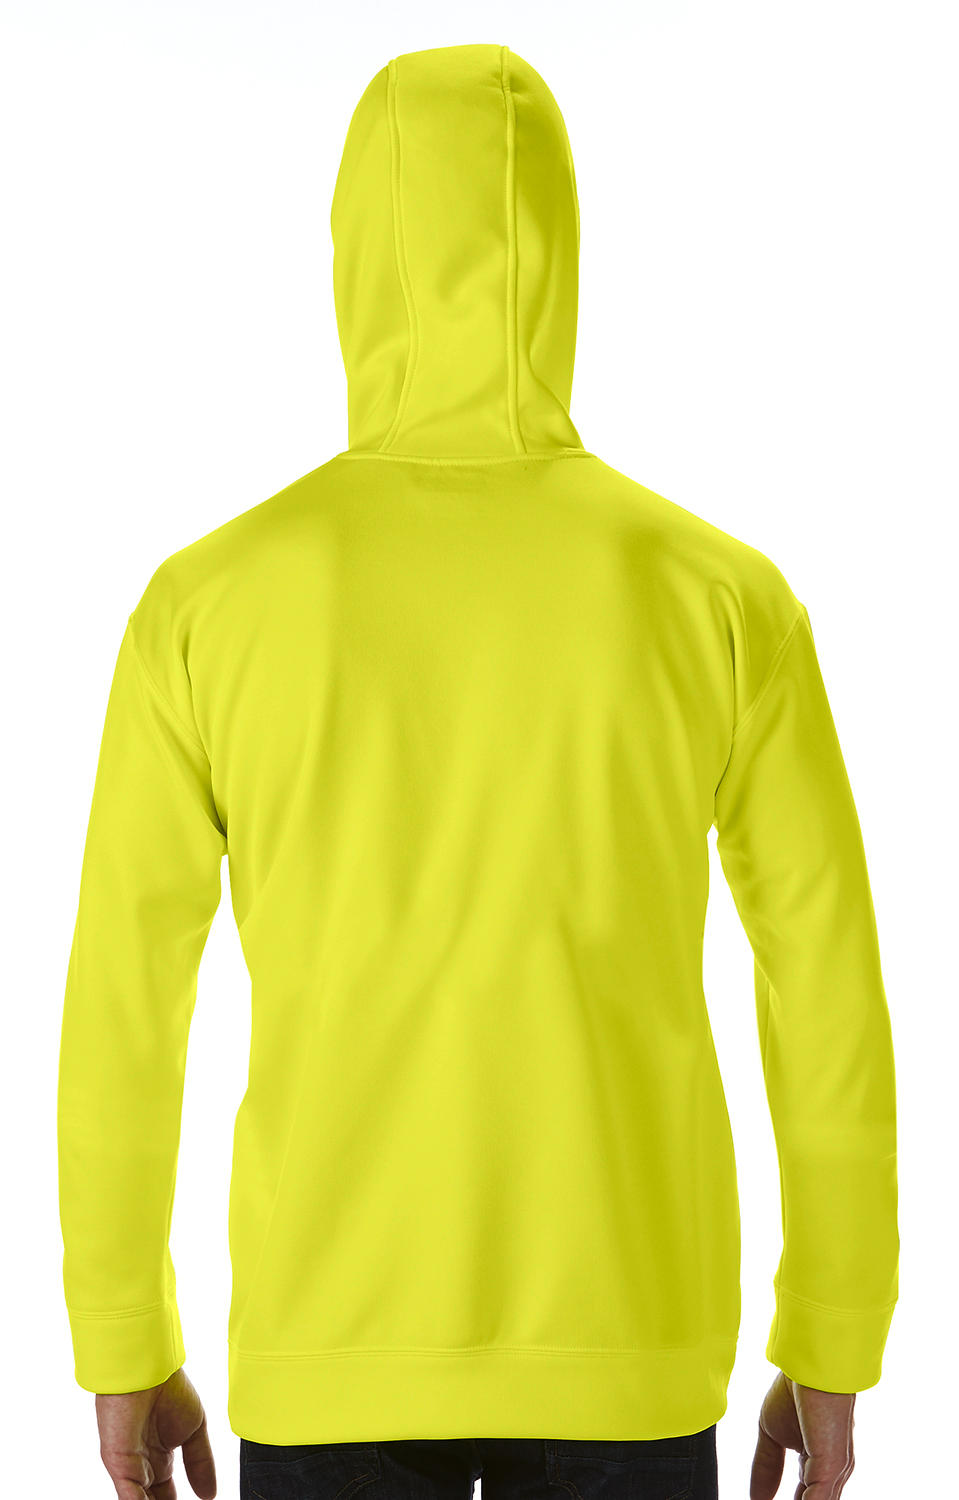 Gildan Performance Adult Tech Hooded Sweatshirt